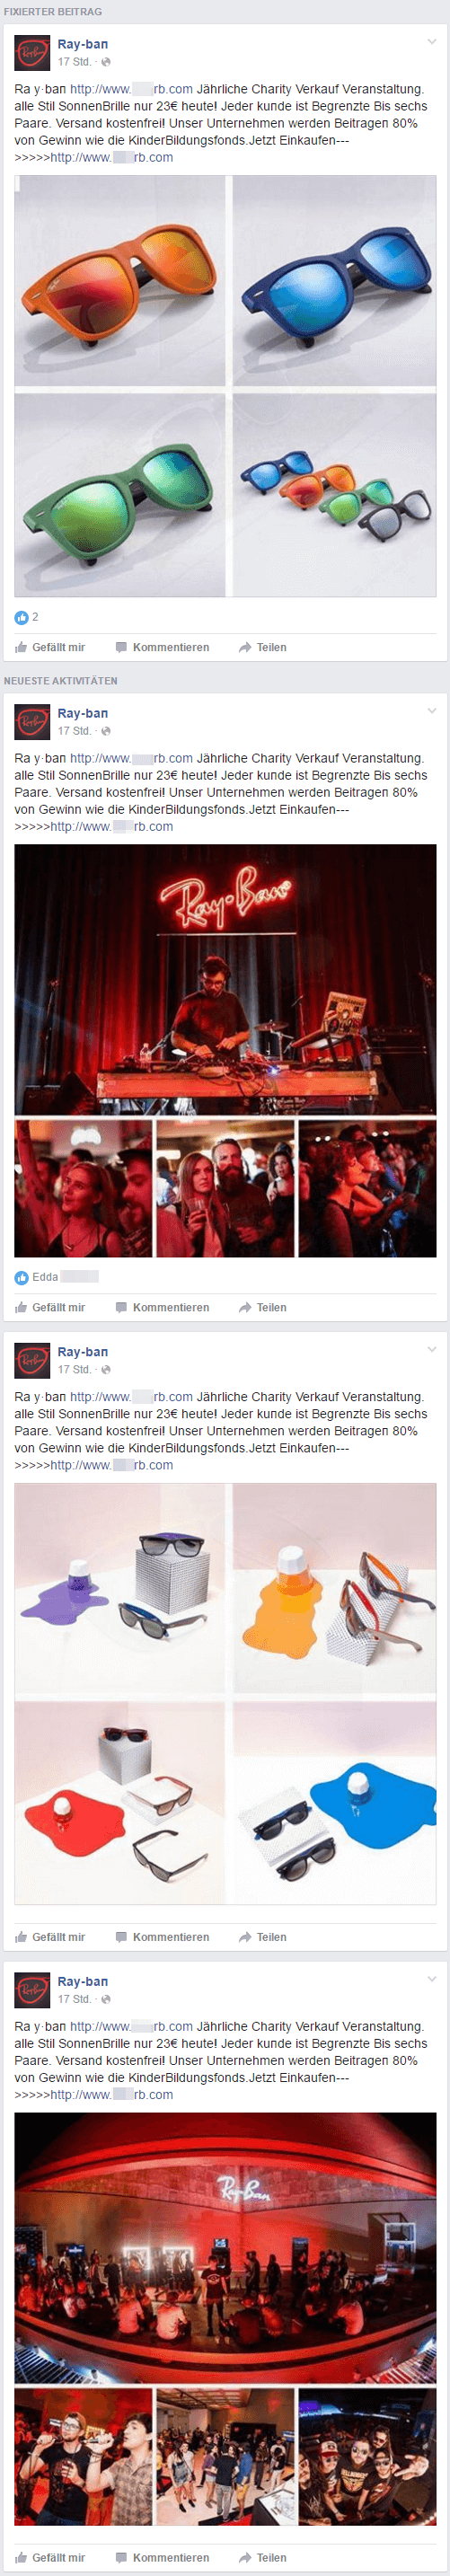 is the ray ban sale on facebook real  screenshot of ads in facebook events, promoting sunglasses shops